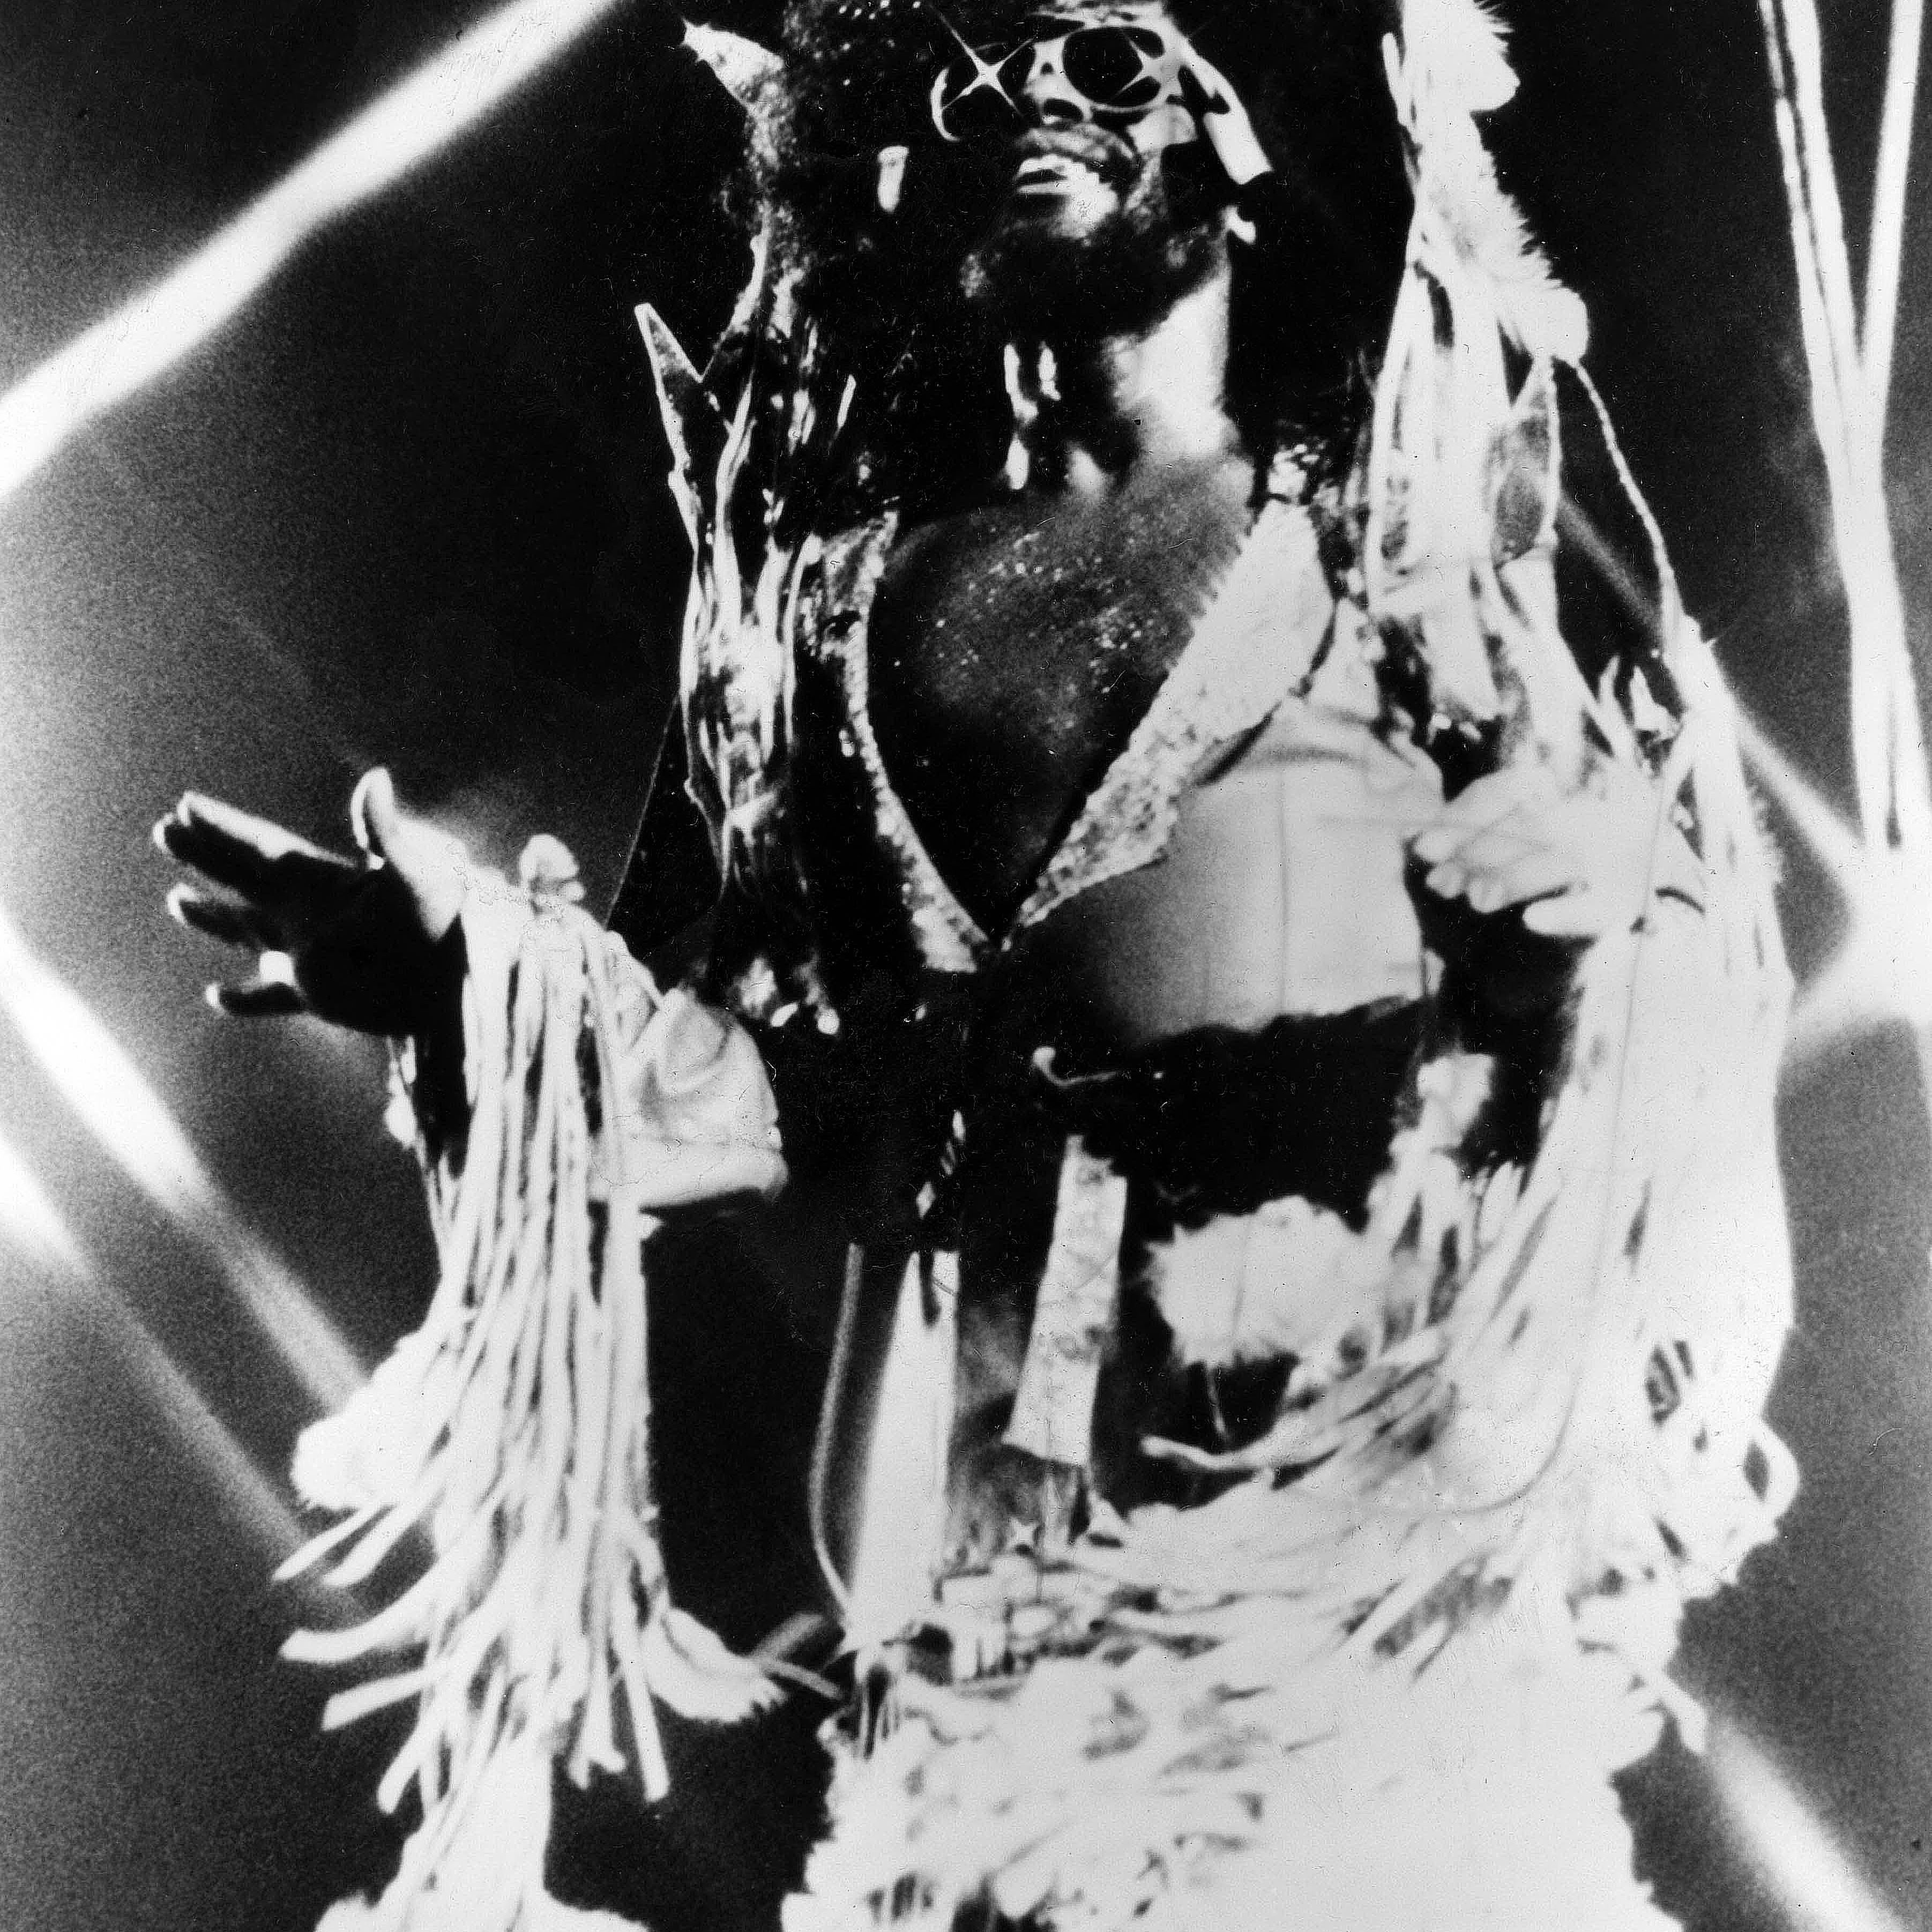 George Clinton singing on stage.